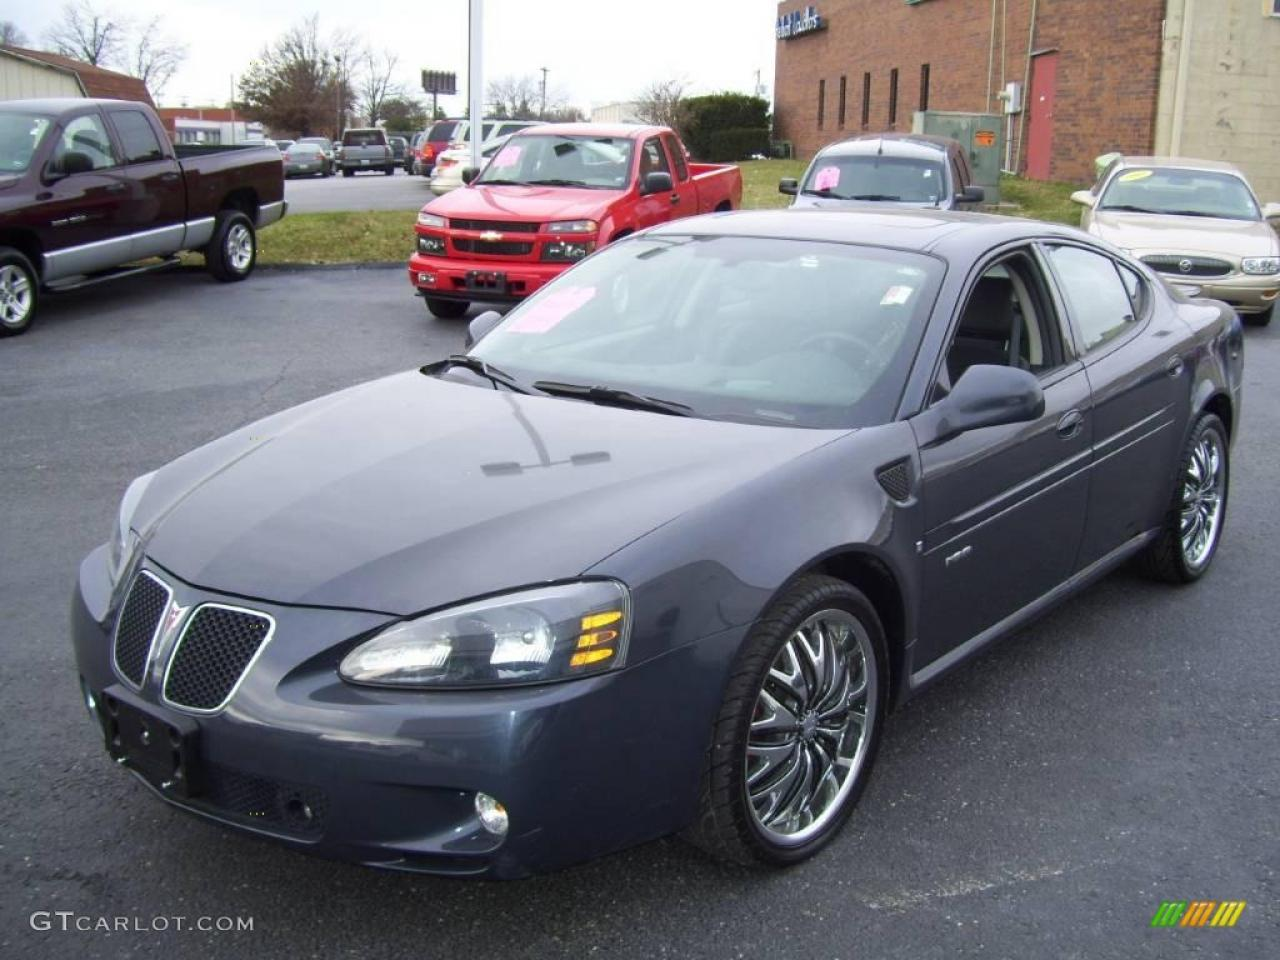 2008 Pontiac Grand Prix Information And Photos Zombiedrive